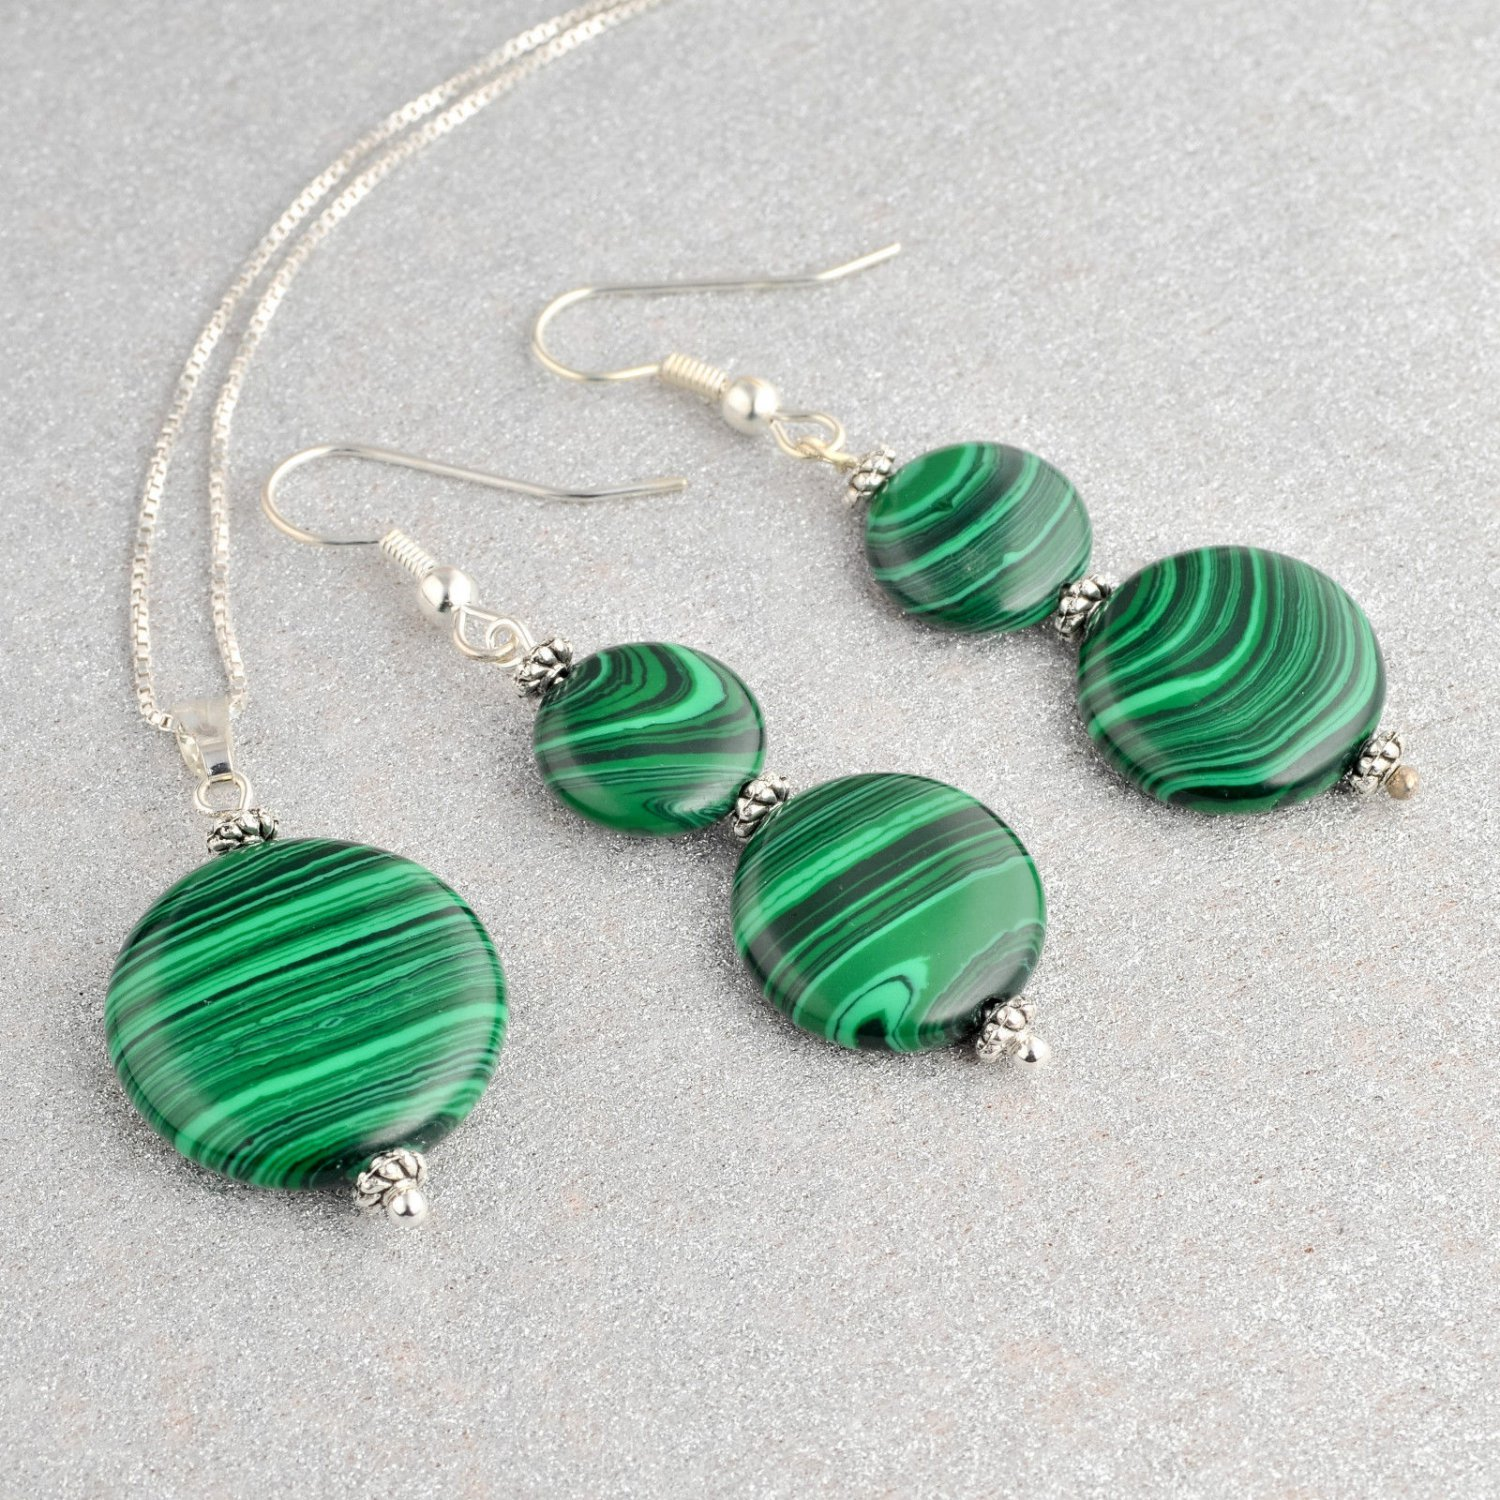 Silver earrings & pendant set Malachite stone + necklace ! High Quality Jewelry